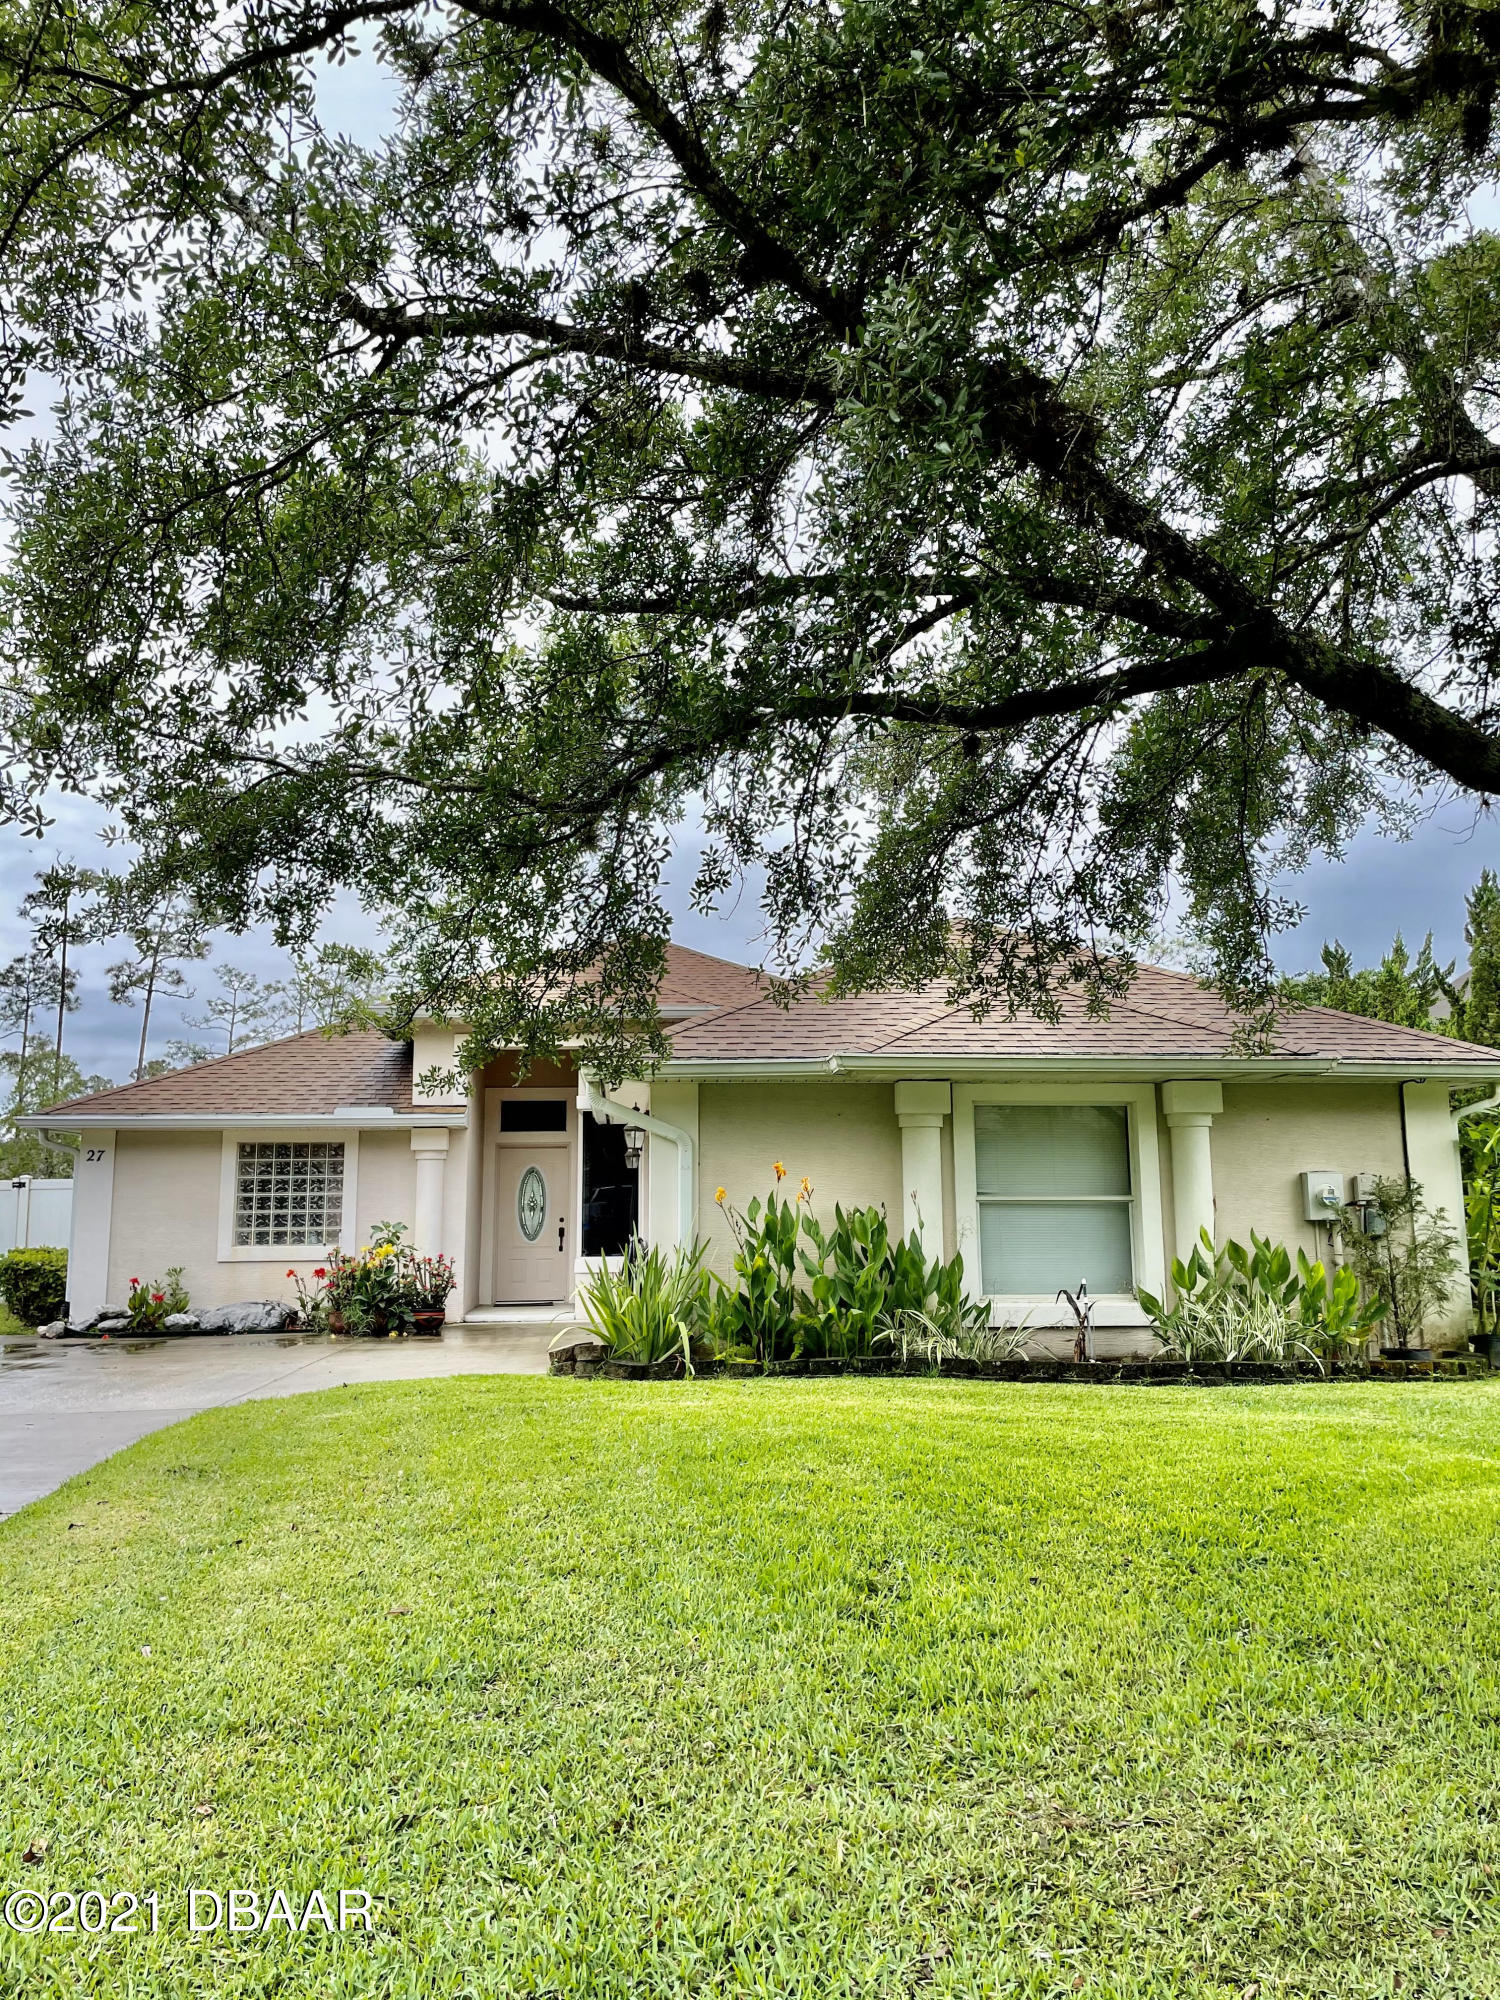 Details for 27 Meadow Ridge View, Ormond Beach, FL 32174